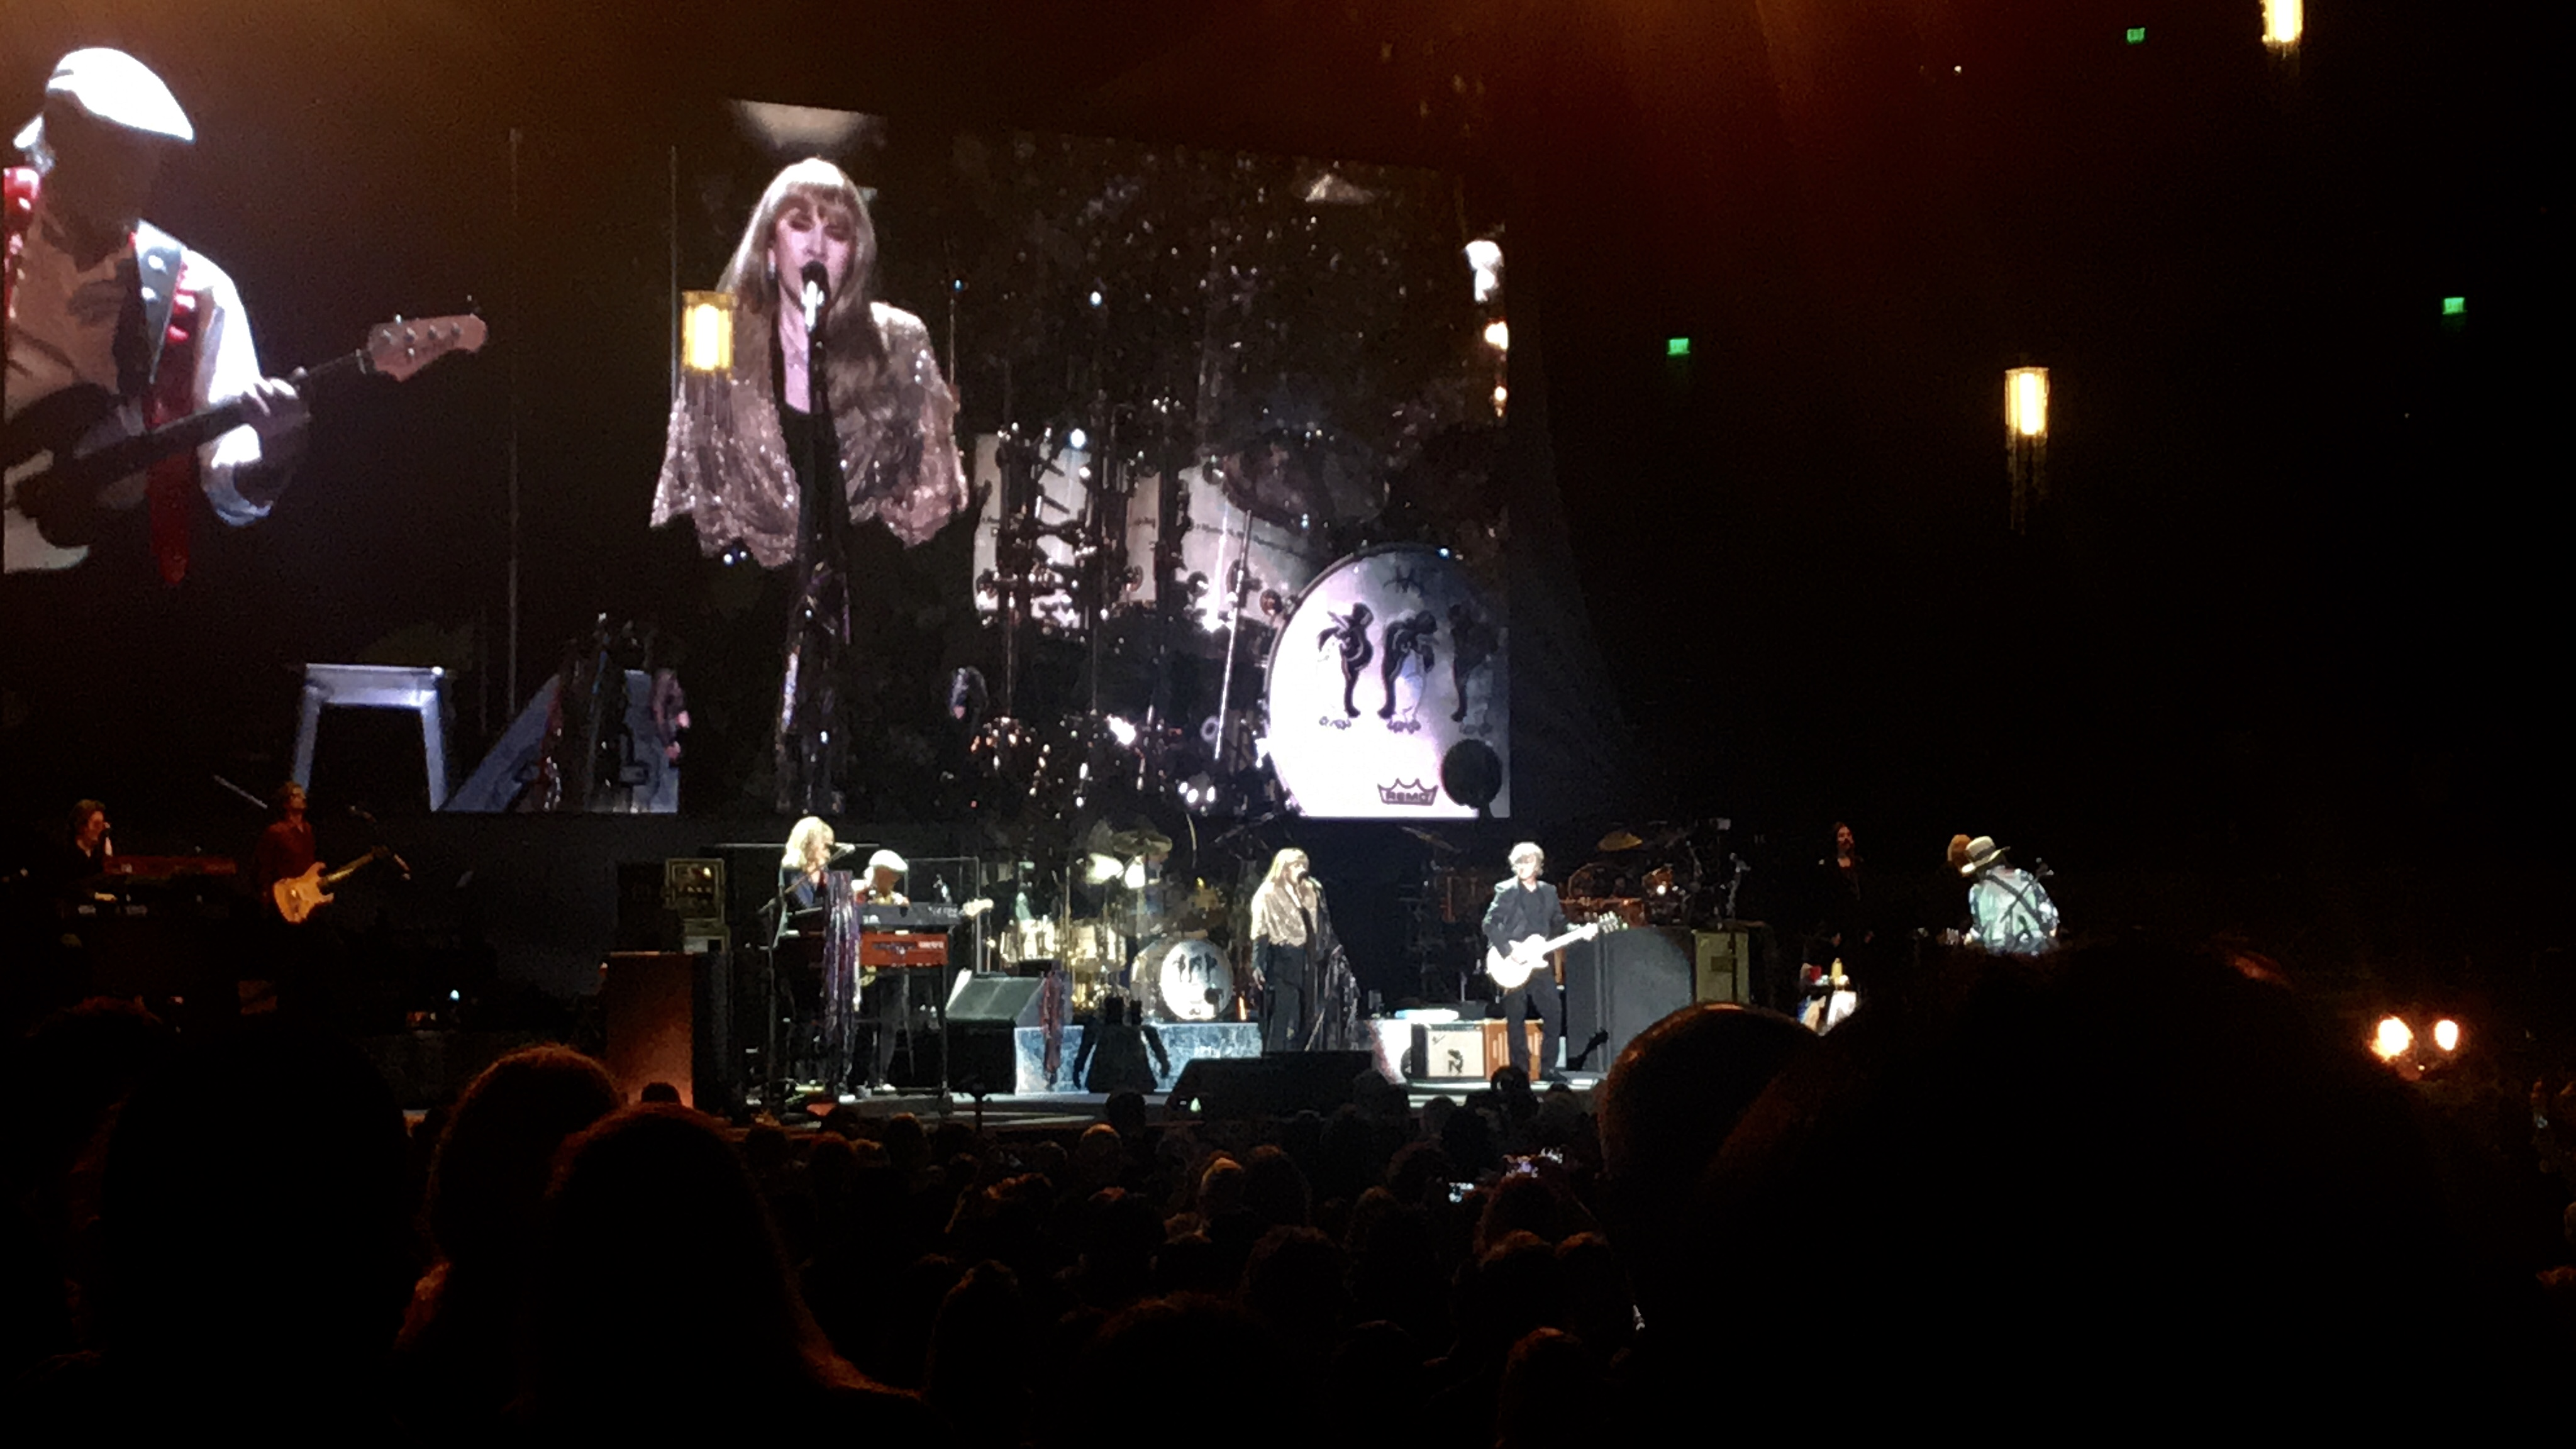 Stevie Nicks sings in the middle wearing a glittery gold shawl. Christine McVie and John McVie are to her left playing keyboard and bass, and Neil Finn and Mike Campbell her to her right playing guitar.